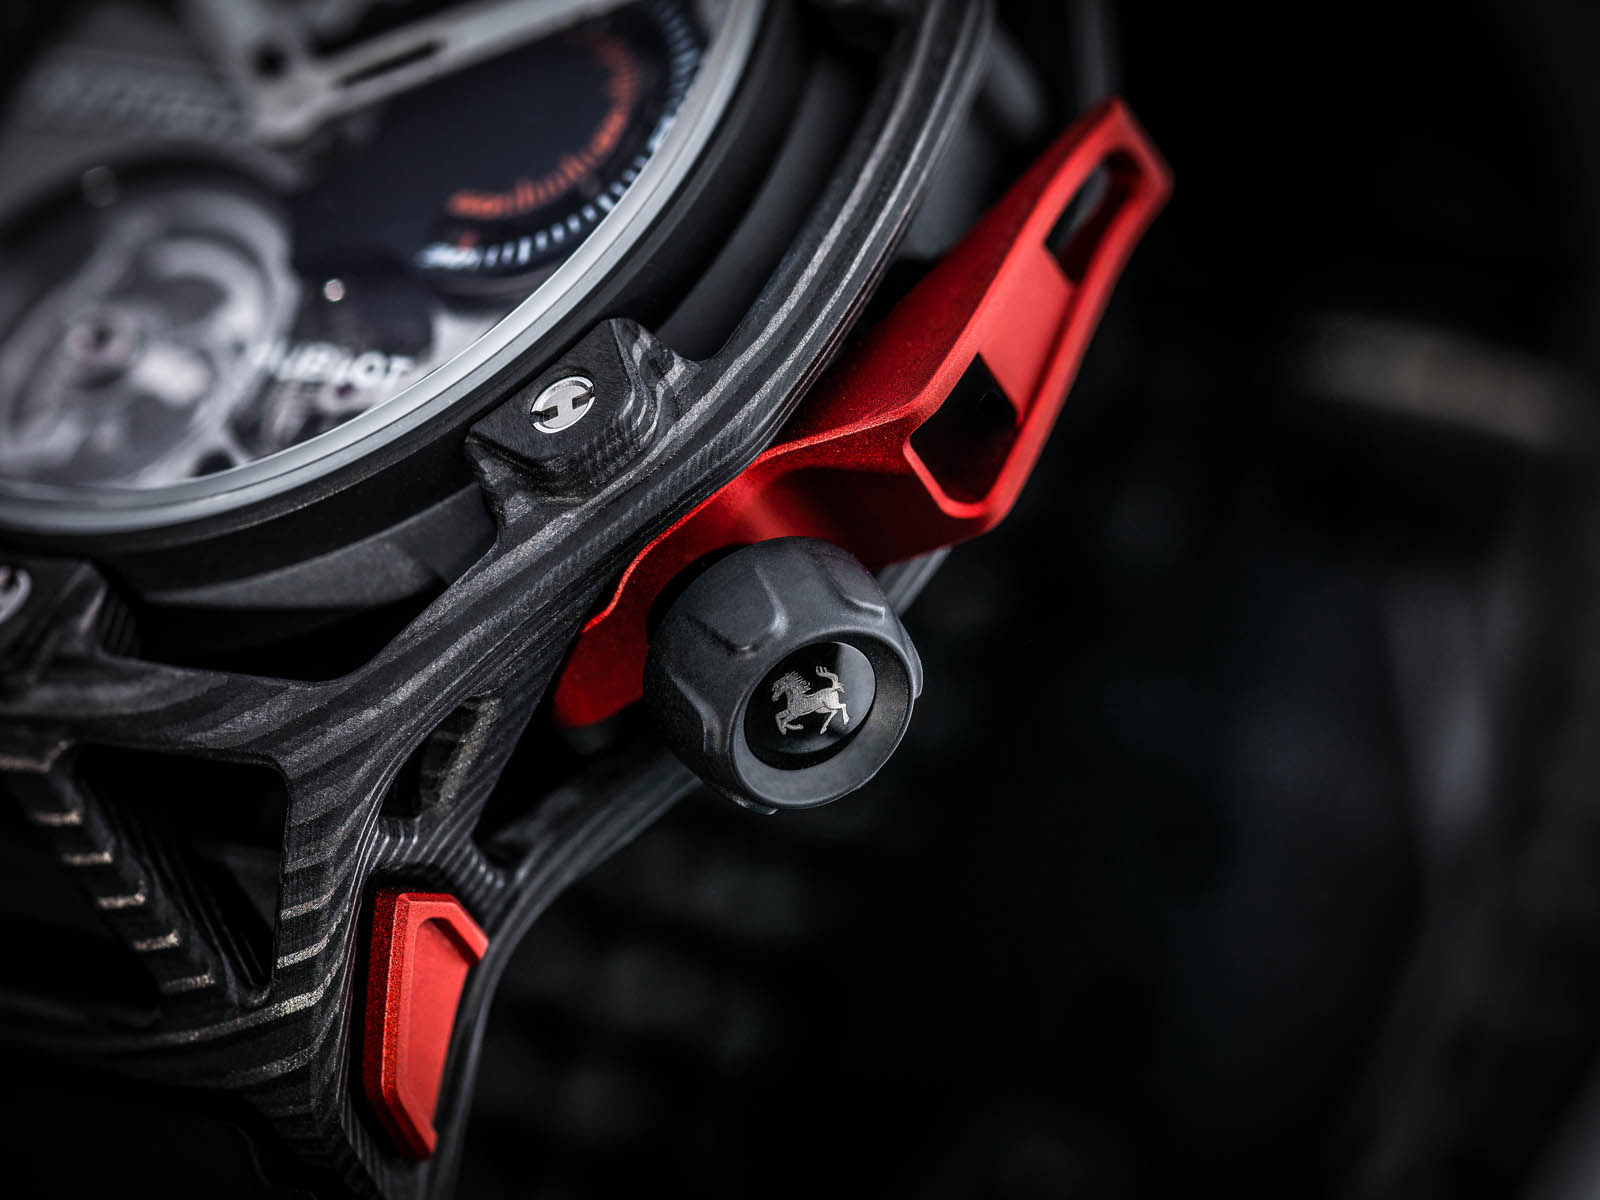 Hublot Techframe (5)